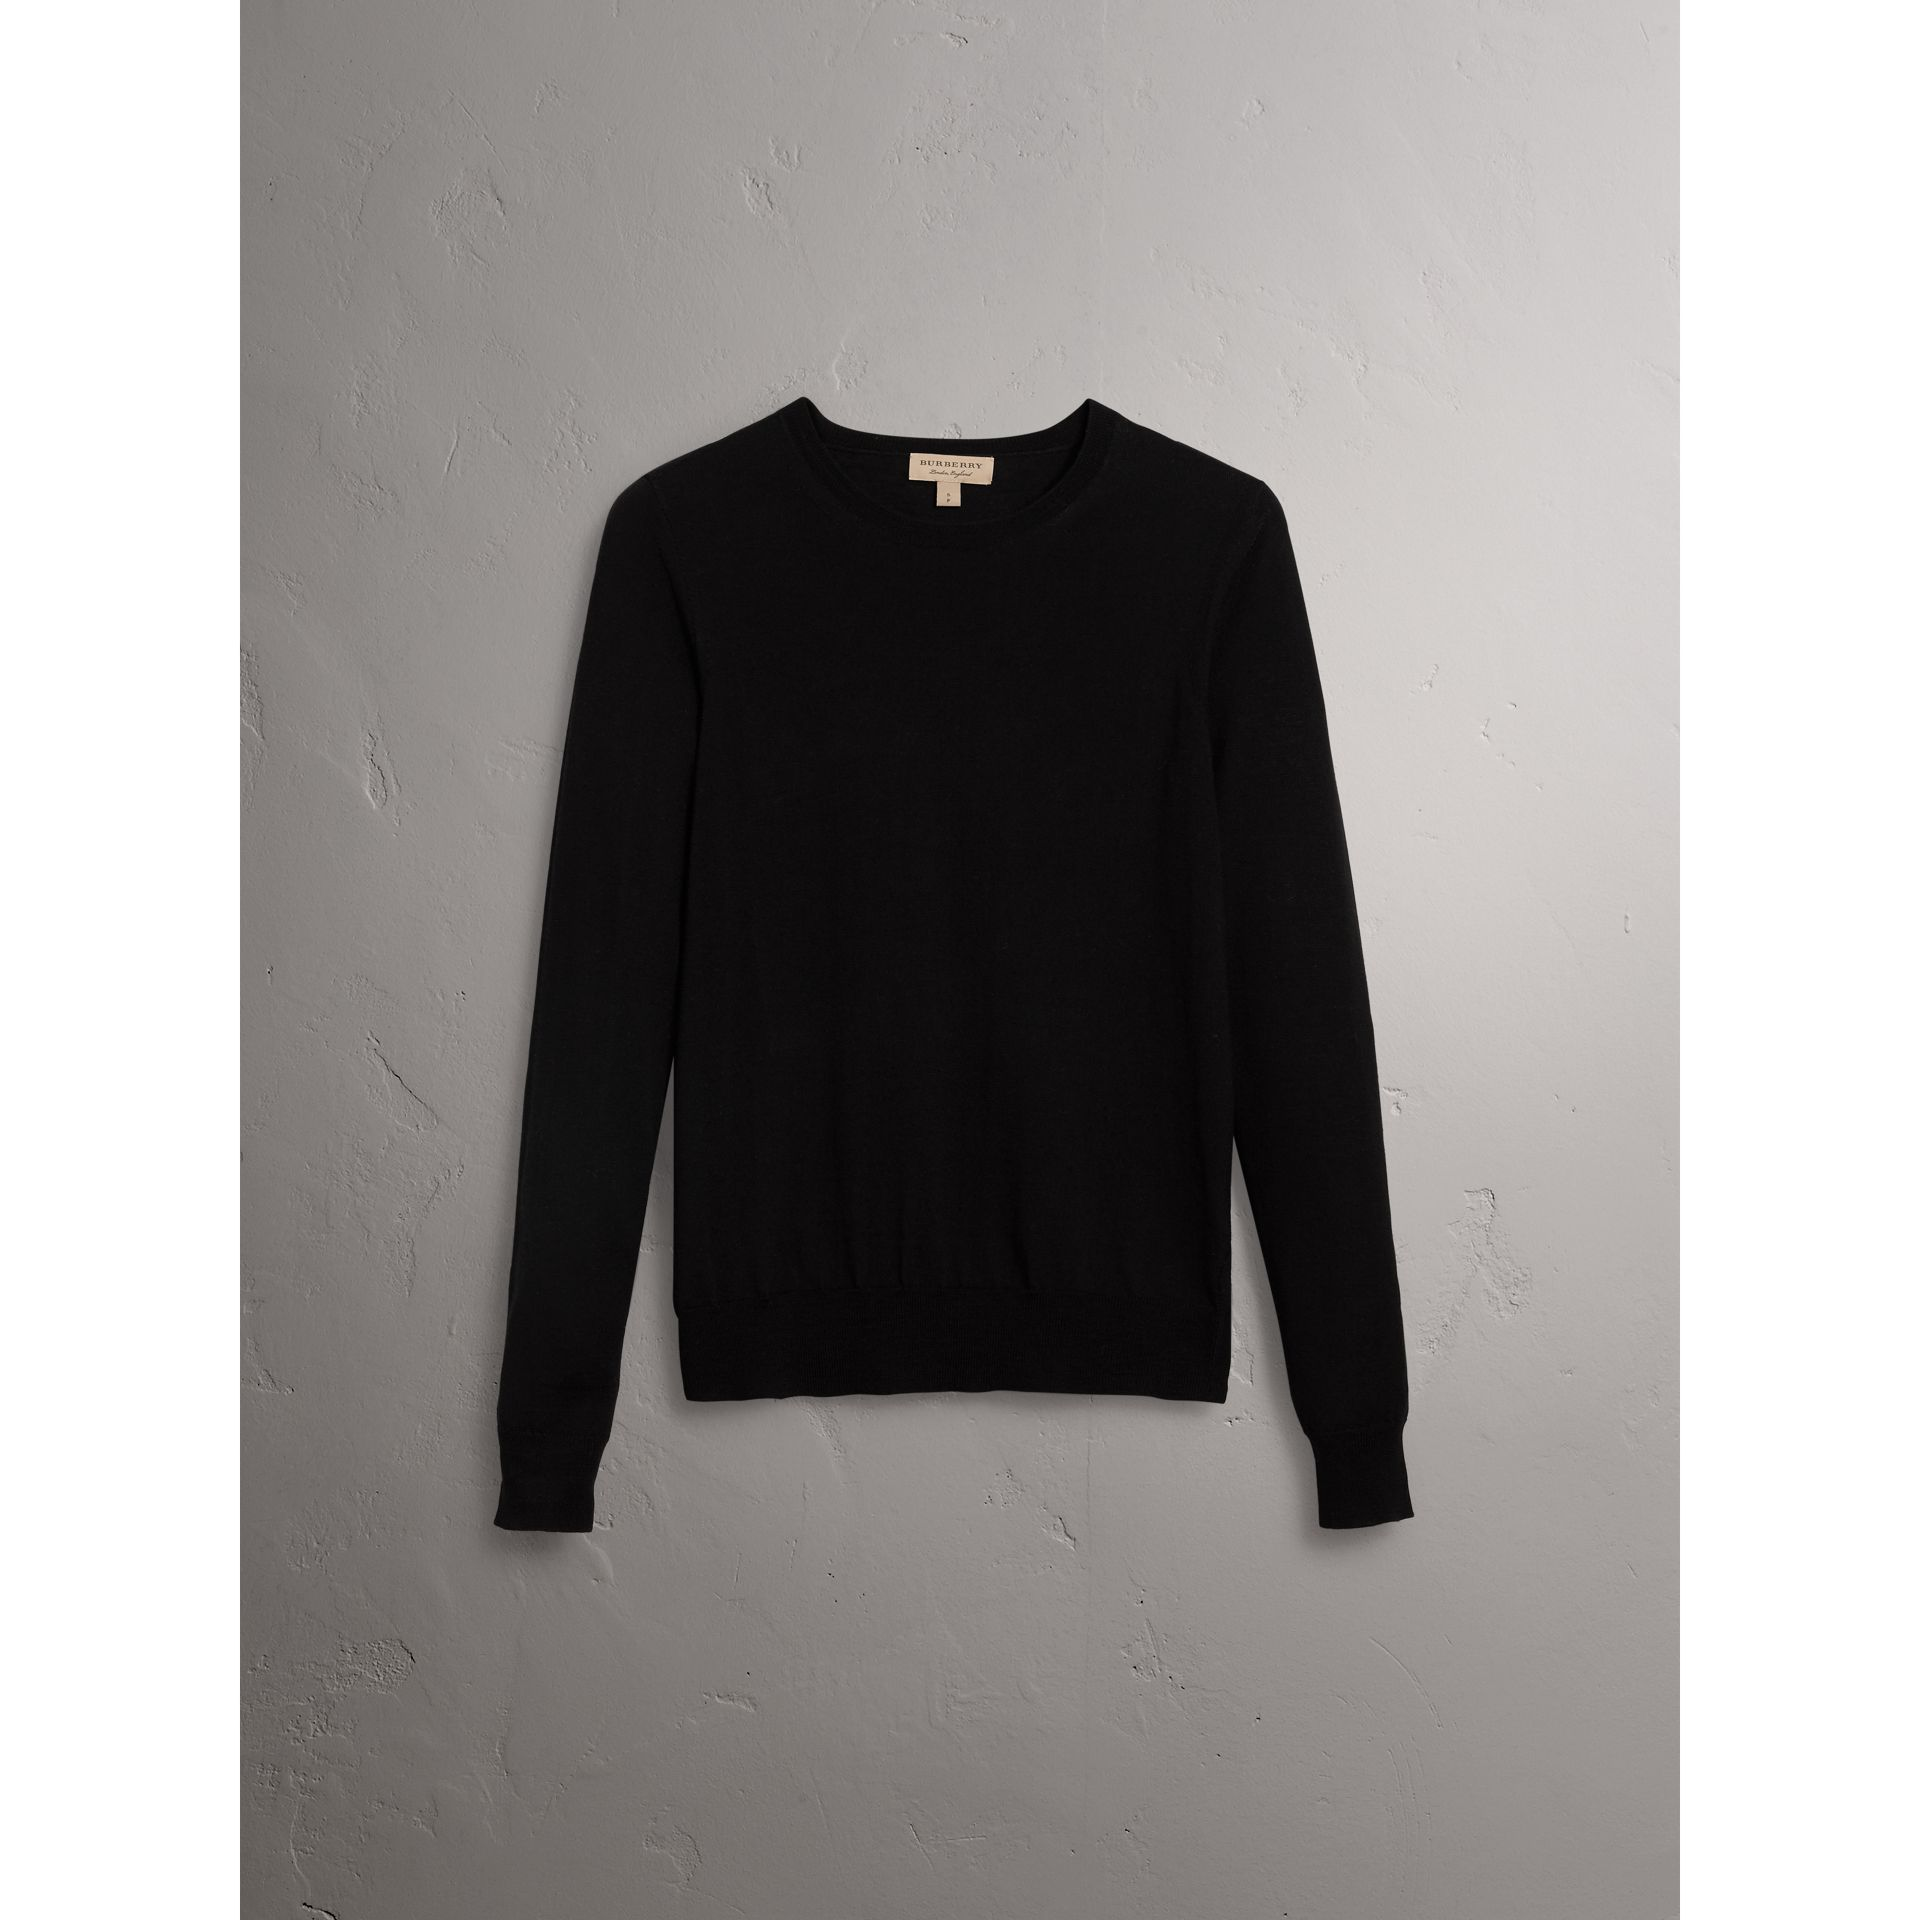 Check Detail Merino Wool Sweater in Black - Women | Burberry United States - gallery image 3